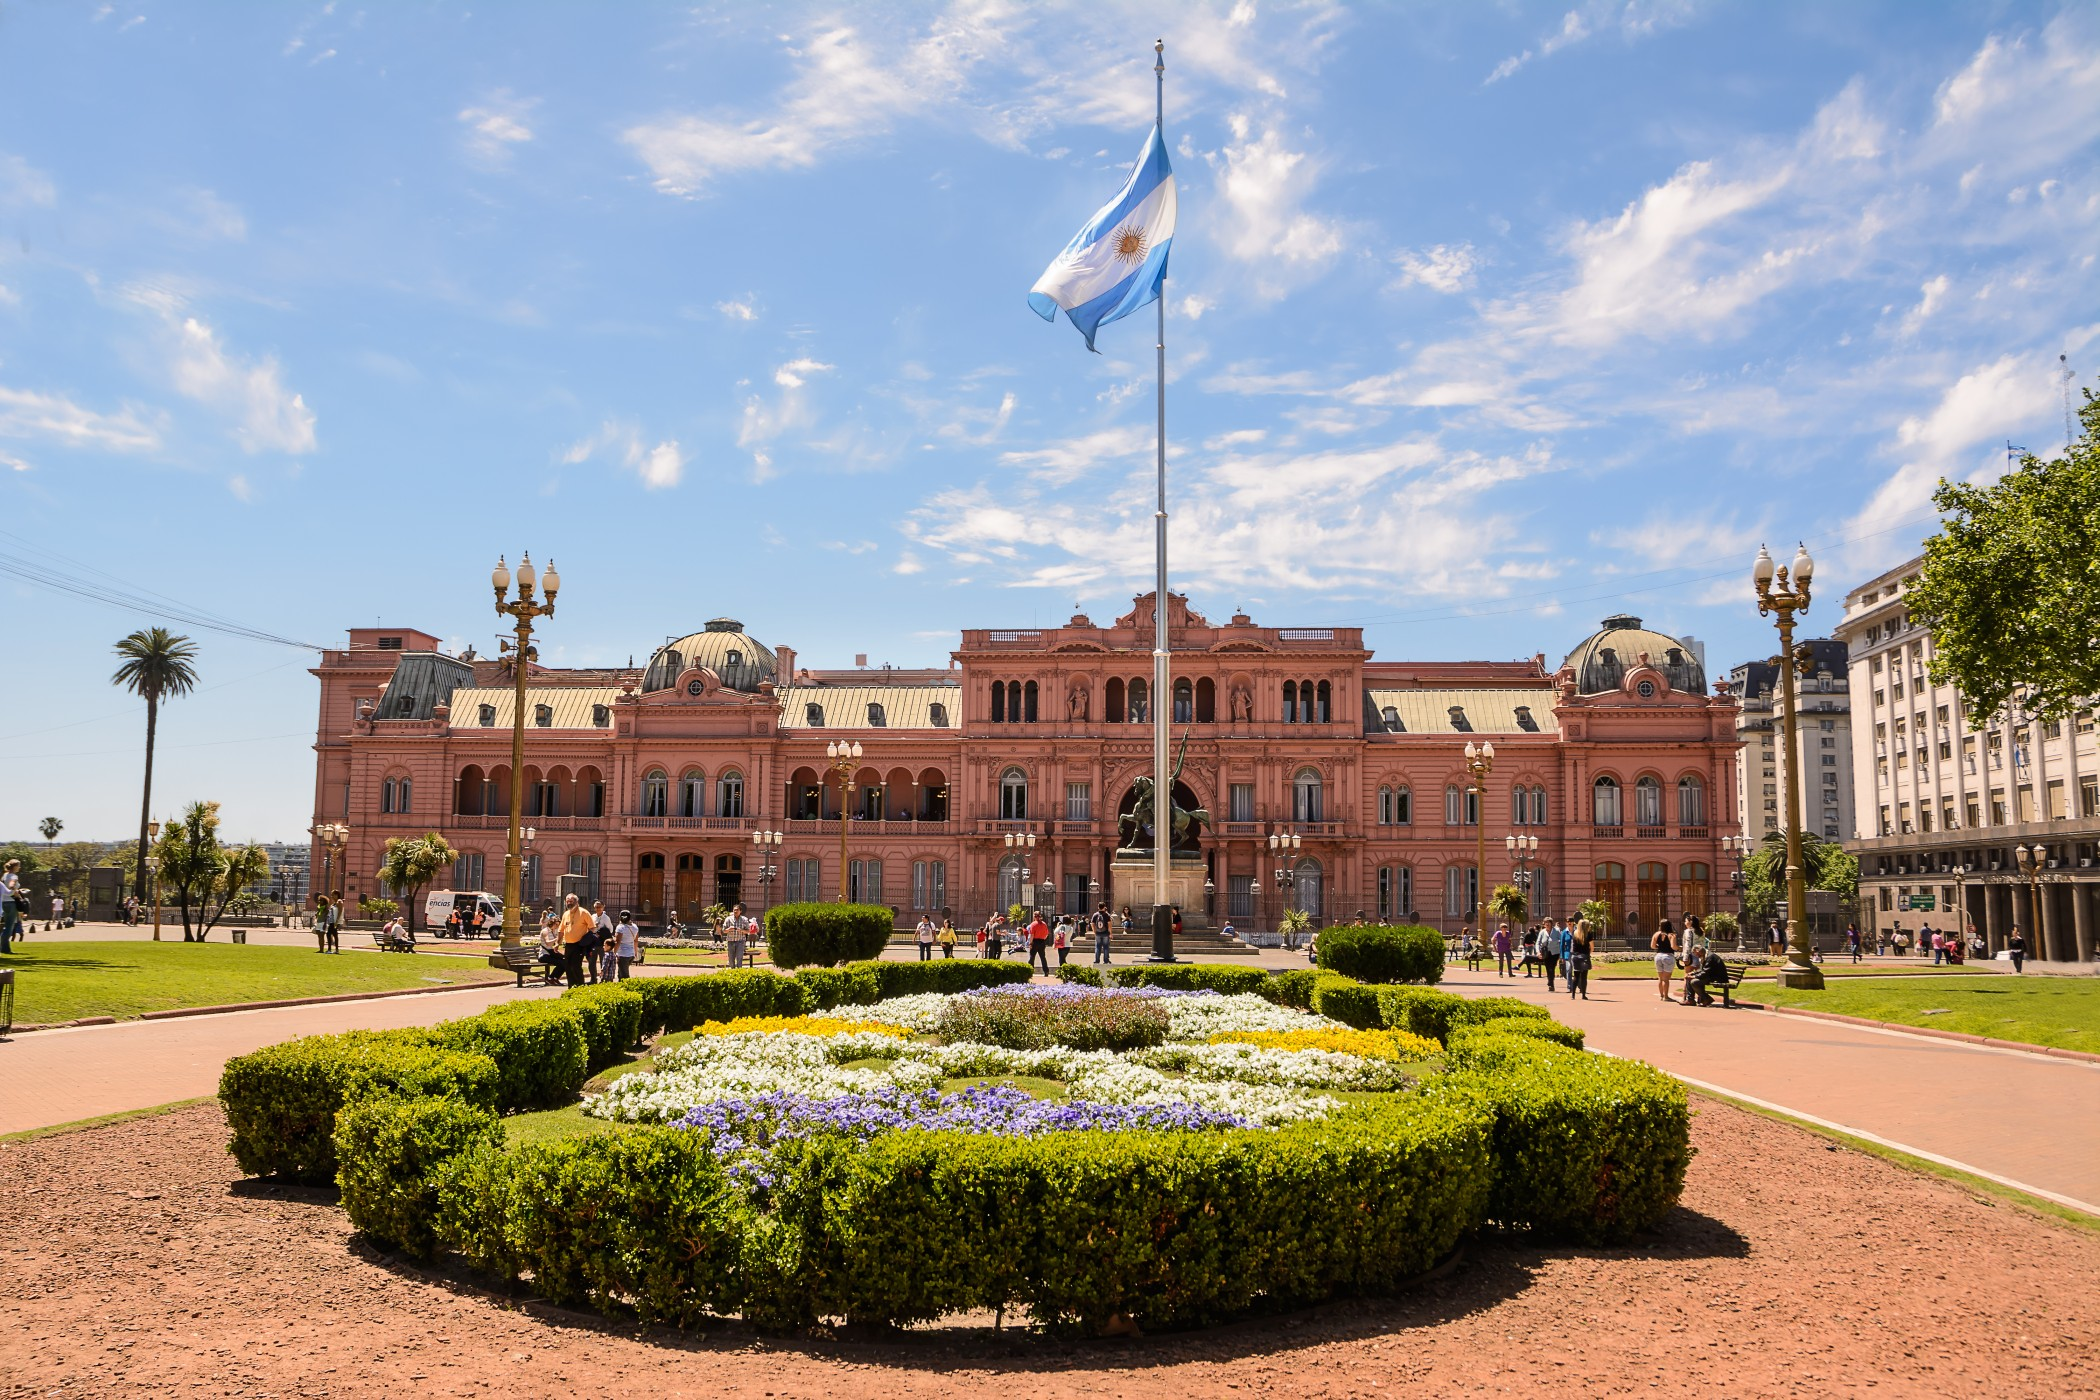 Buenos Aires, Argentina - October 30, 2016: Casa Rosada in Plaza de Mayo in Buenos aires with tourist in a sunny day.